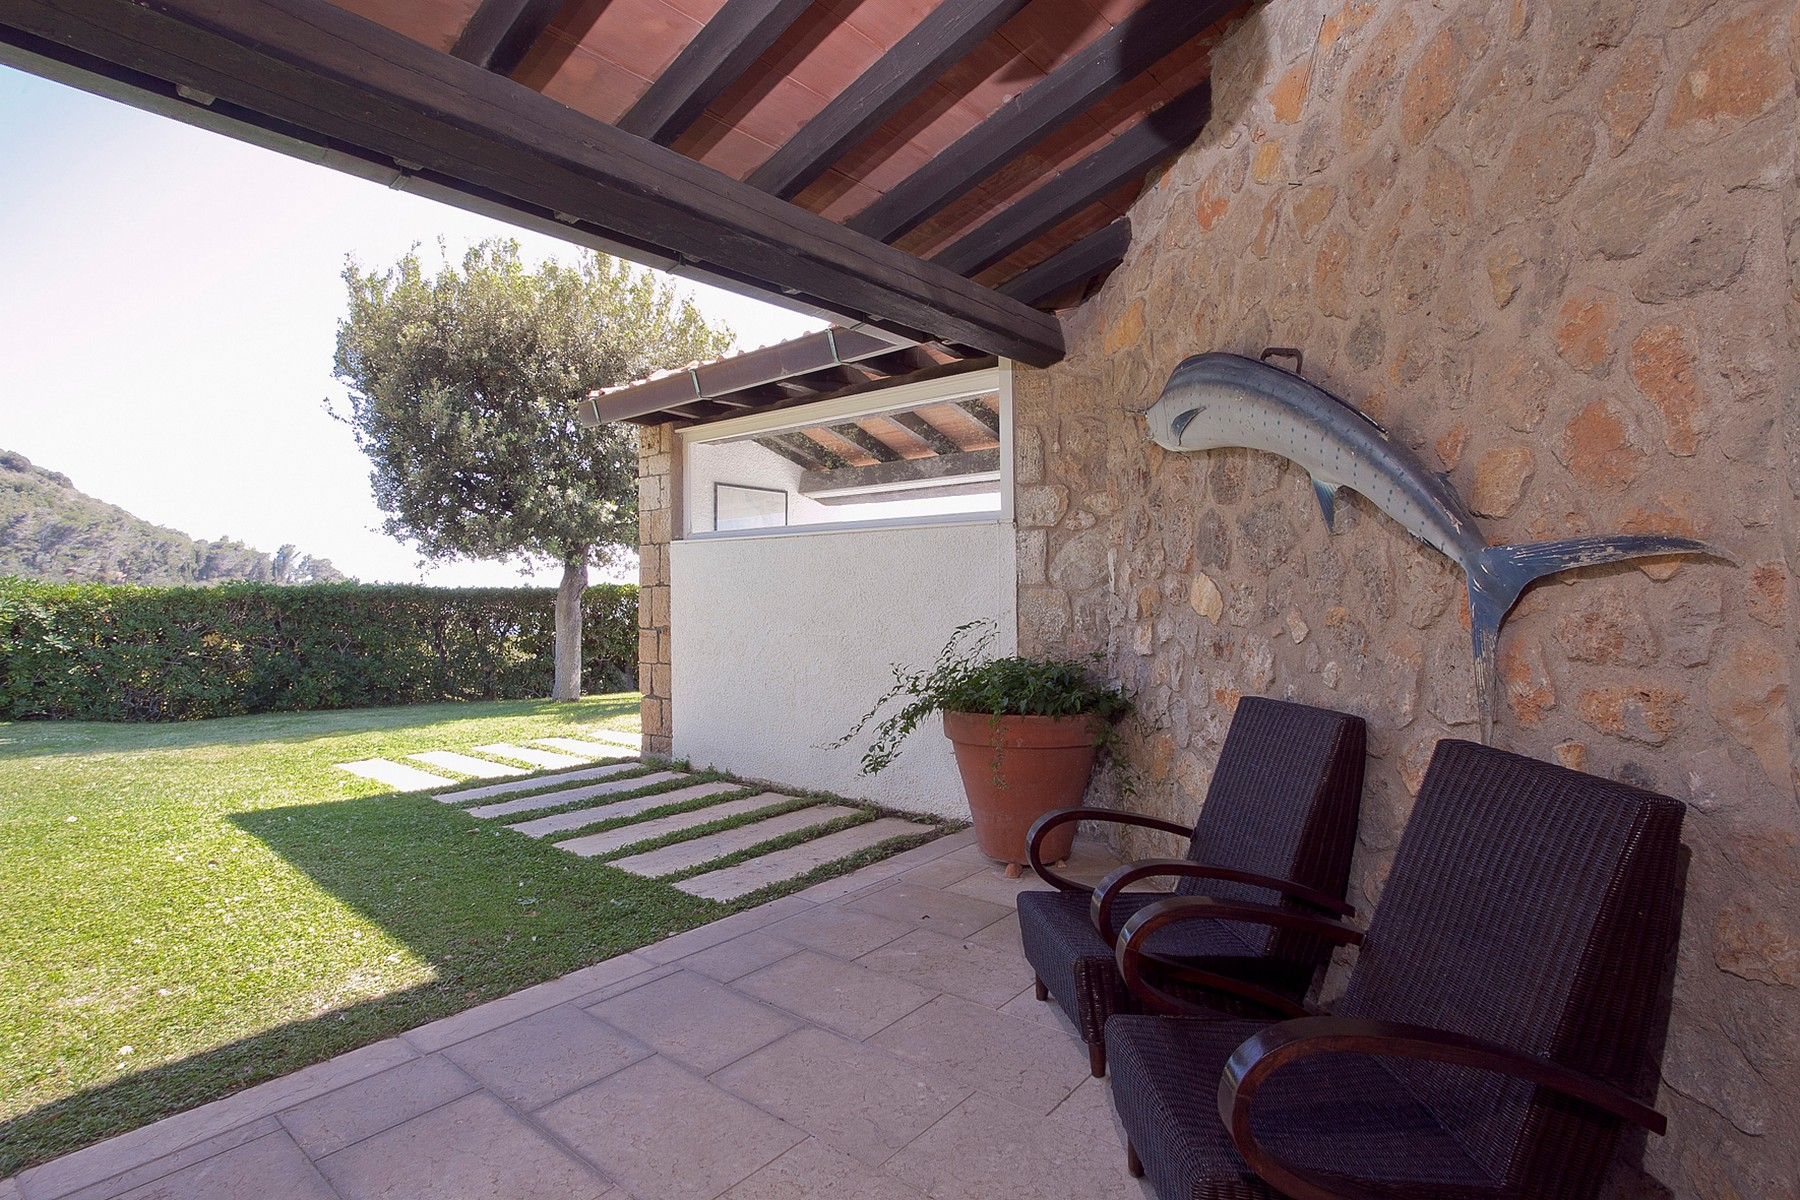 Additional photo for property listing at Splendid Villa on Monte Argentario Cala Piccola Di Monte Argentario Grosseto, Grosseto 58019 Italy